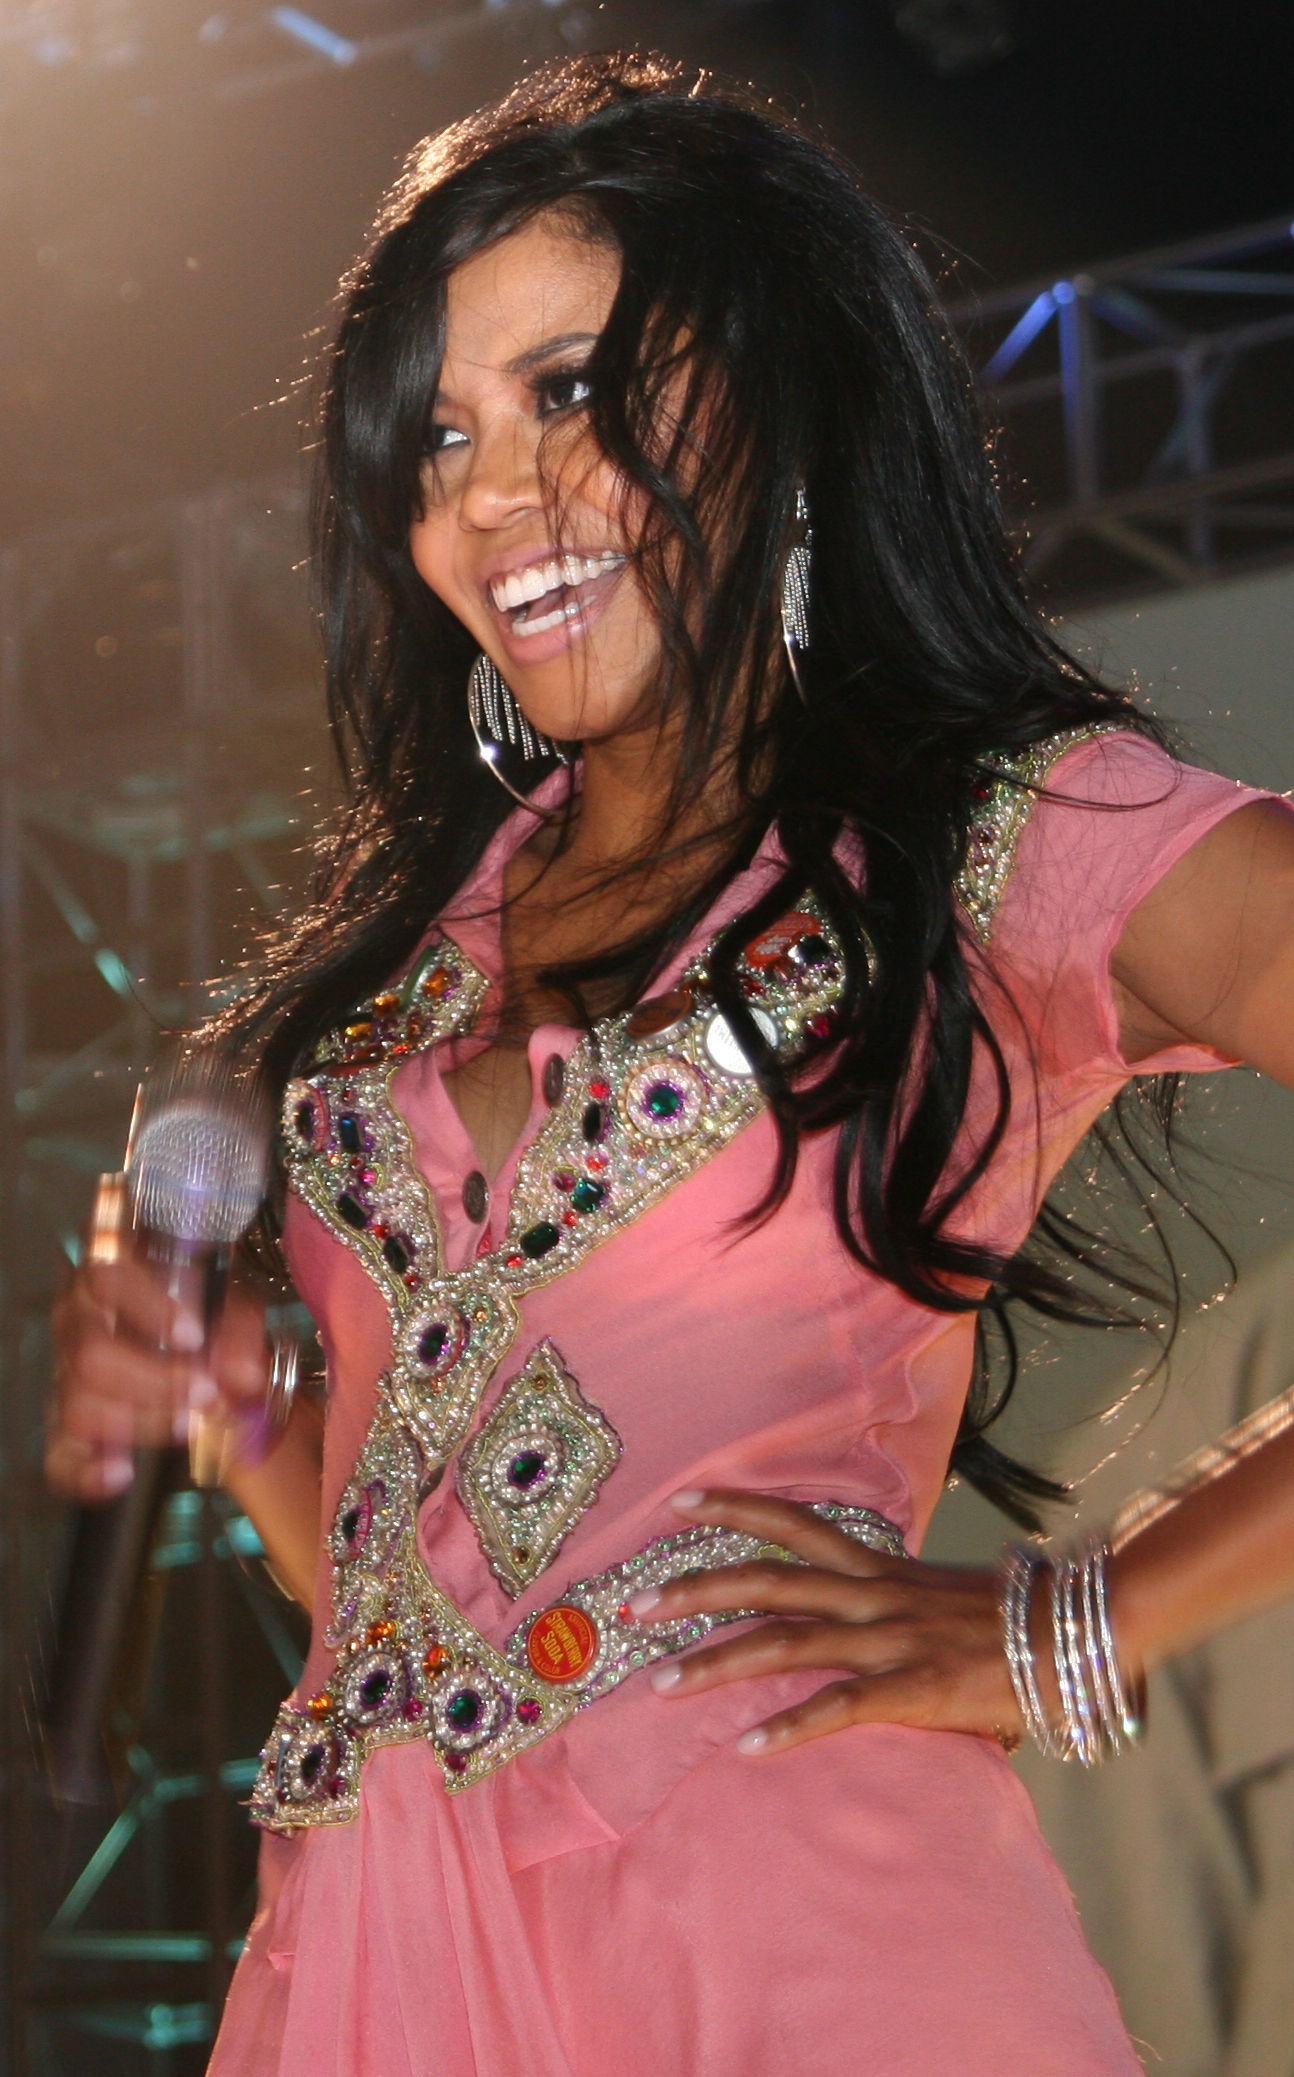 Photo of Amerie: American singer-songwriter, record producer, and actress